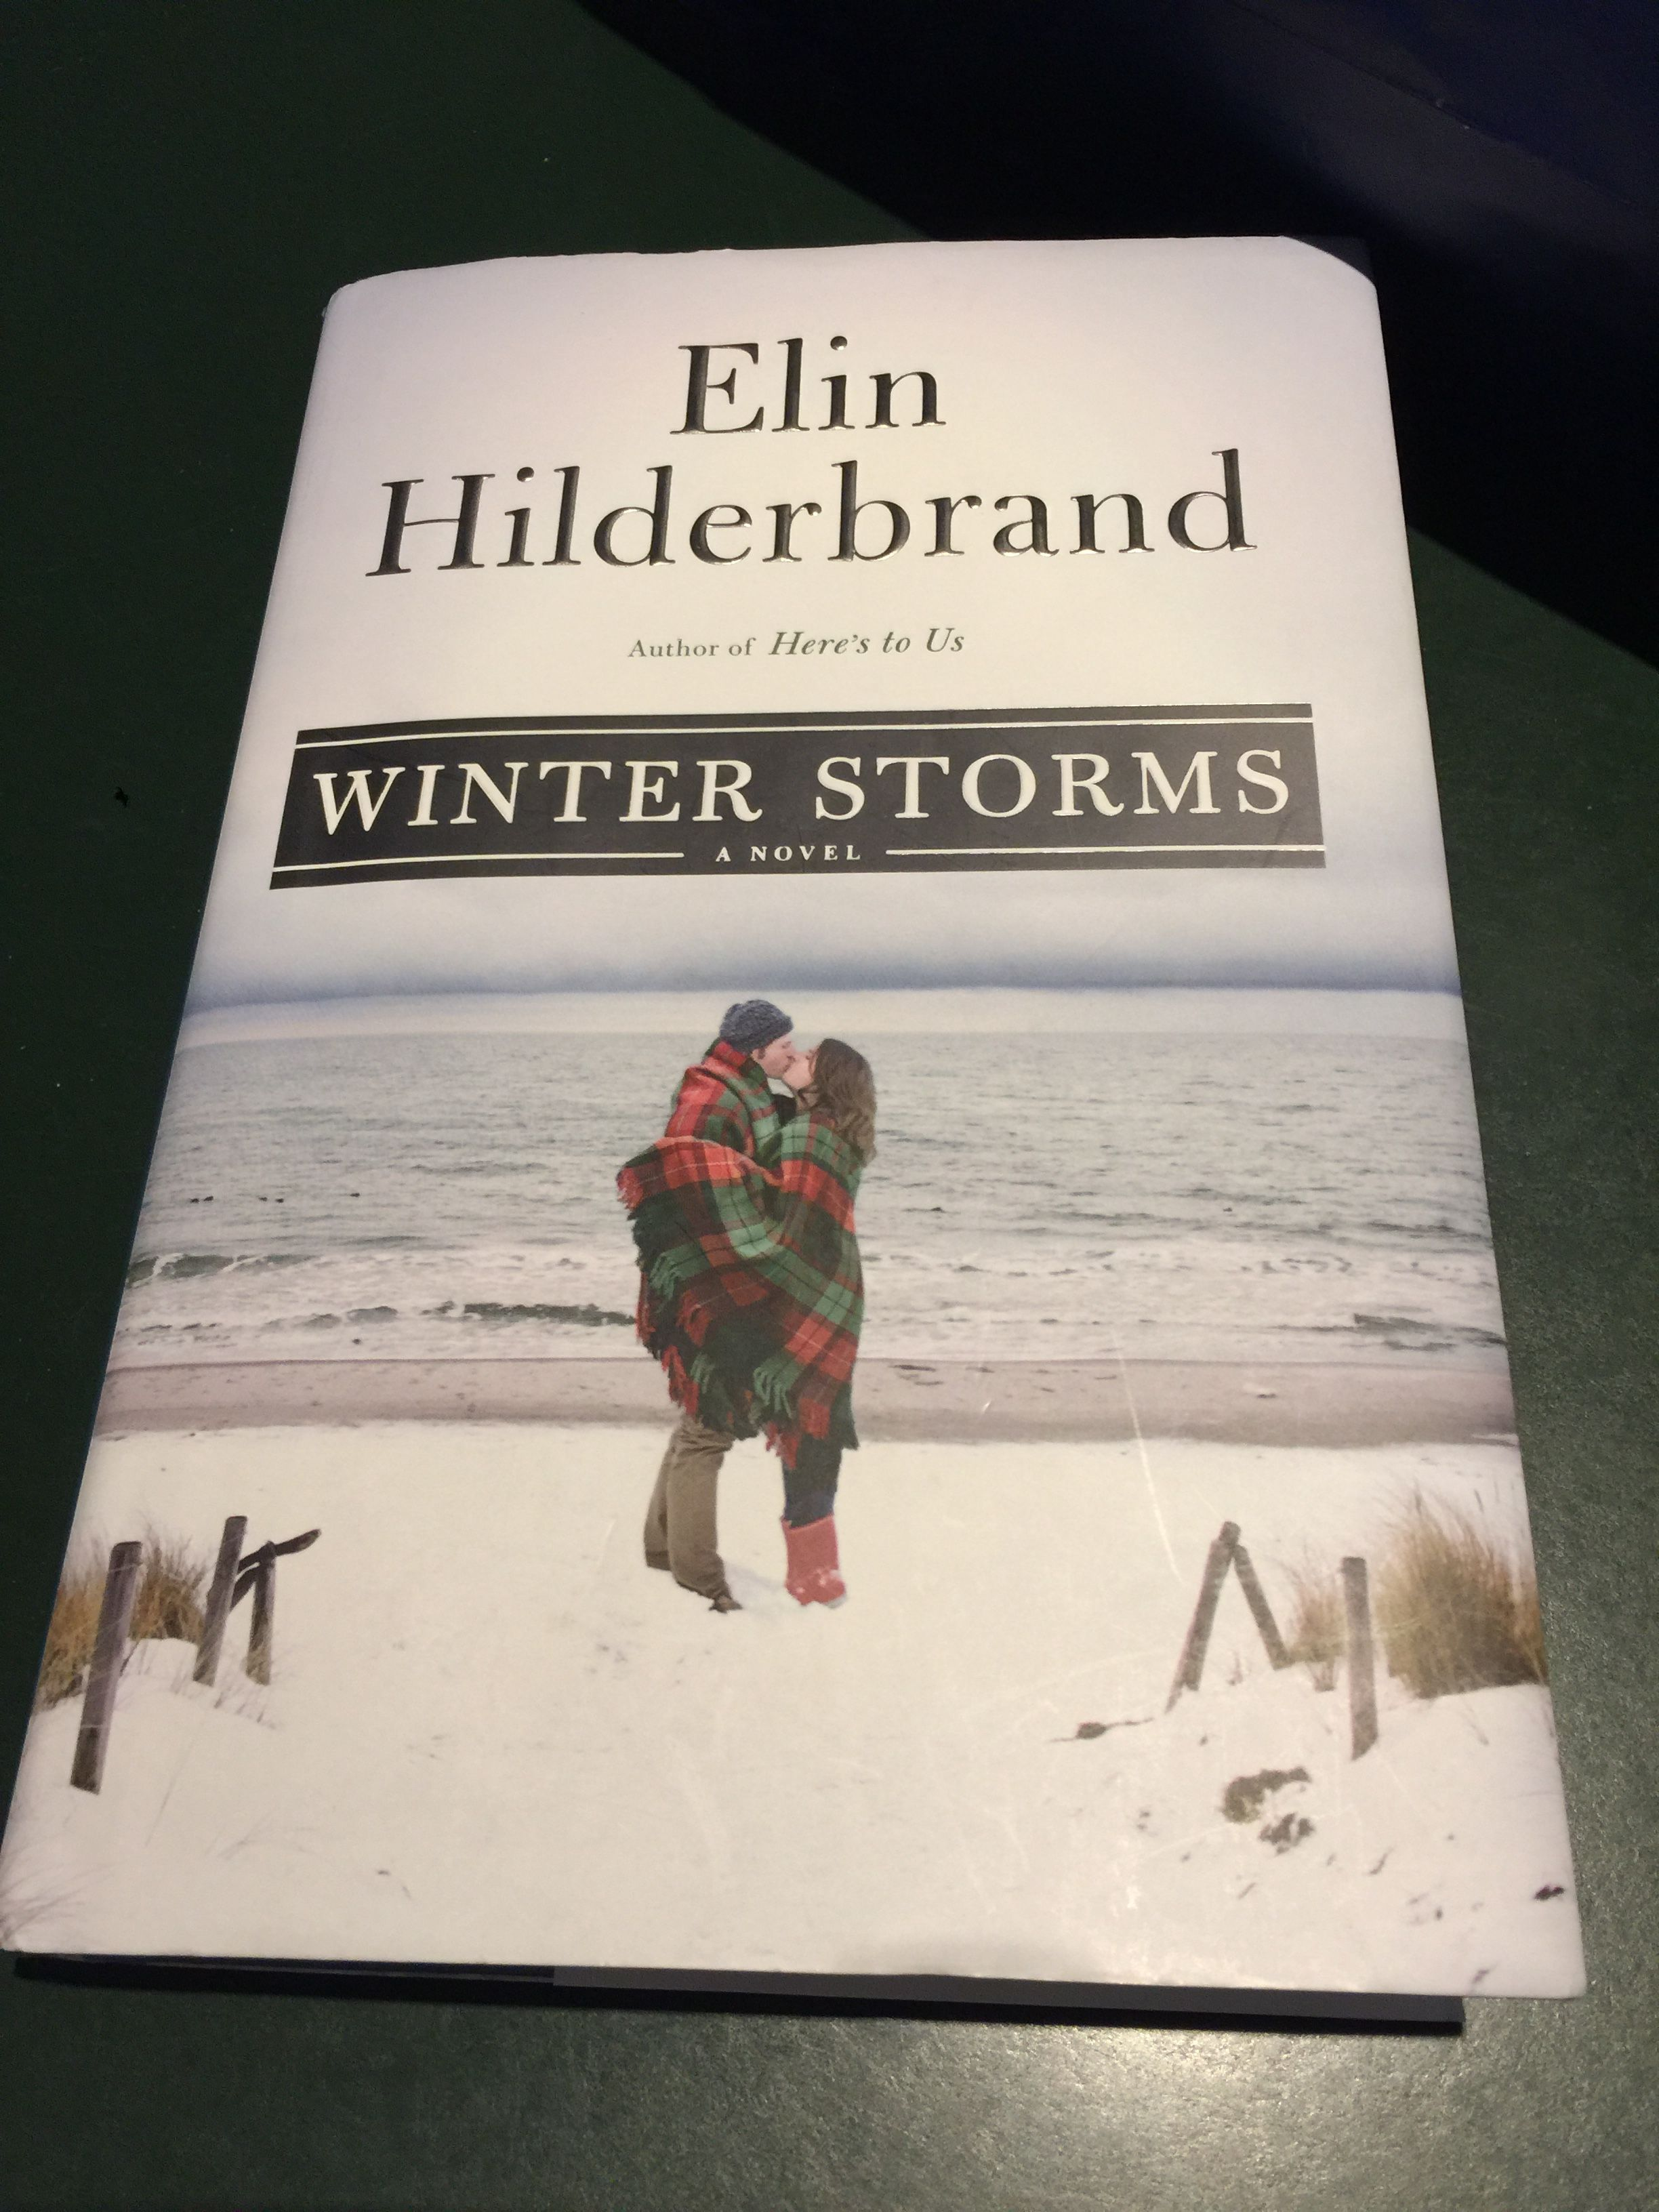 Winter Storm Elin Hilderbrand (With images) Winter